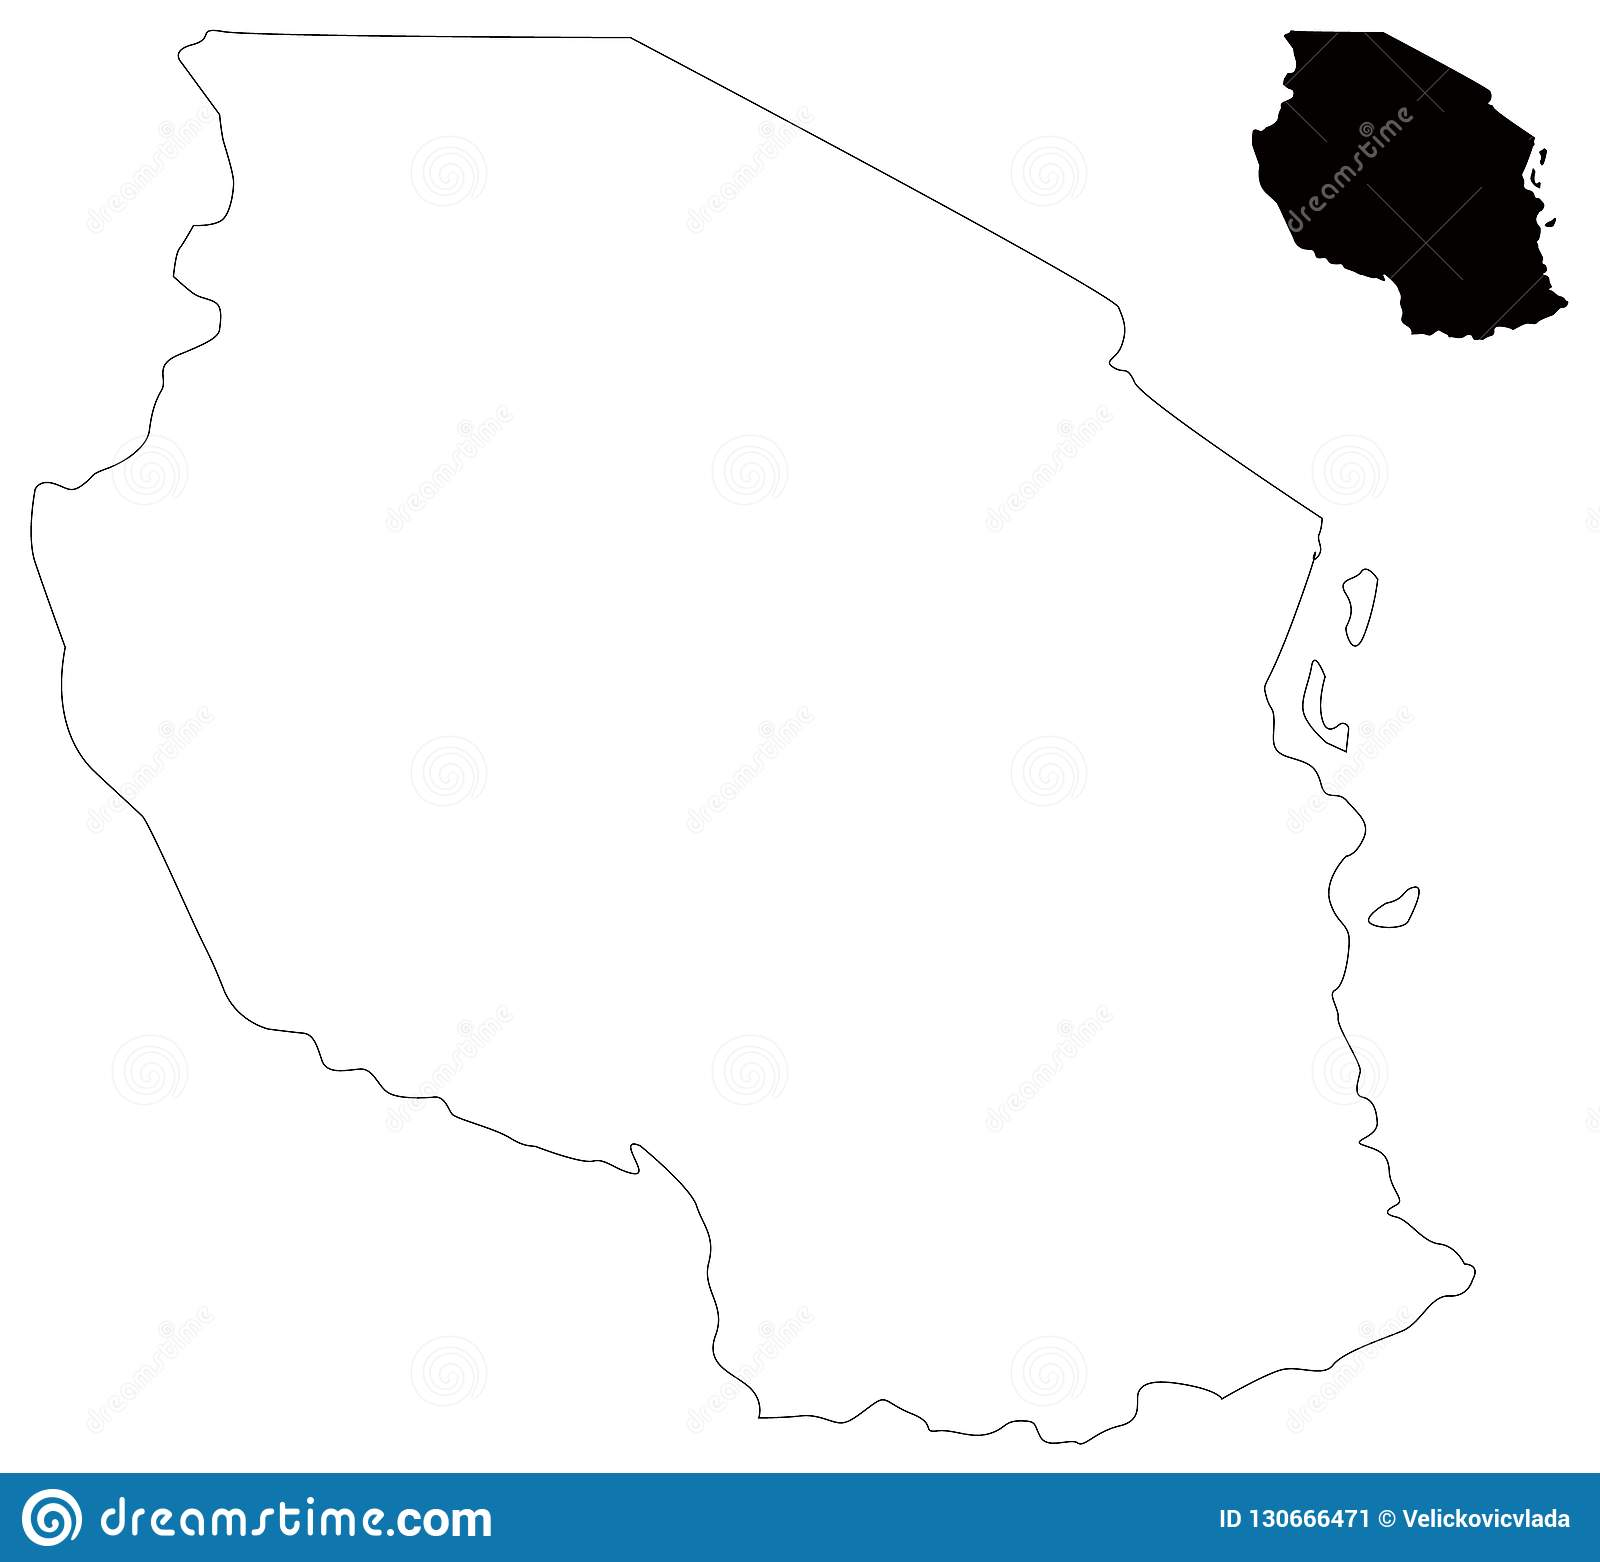 Lakes Of Africa Map.Tanzania Map Country In Eastern Africa Within The African Great